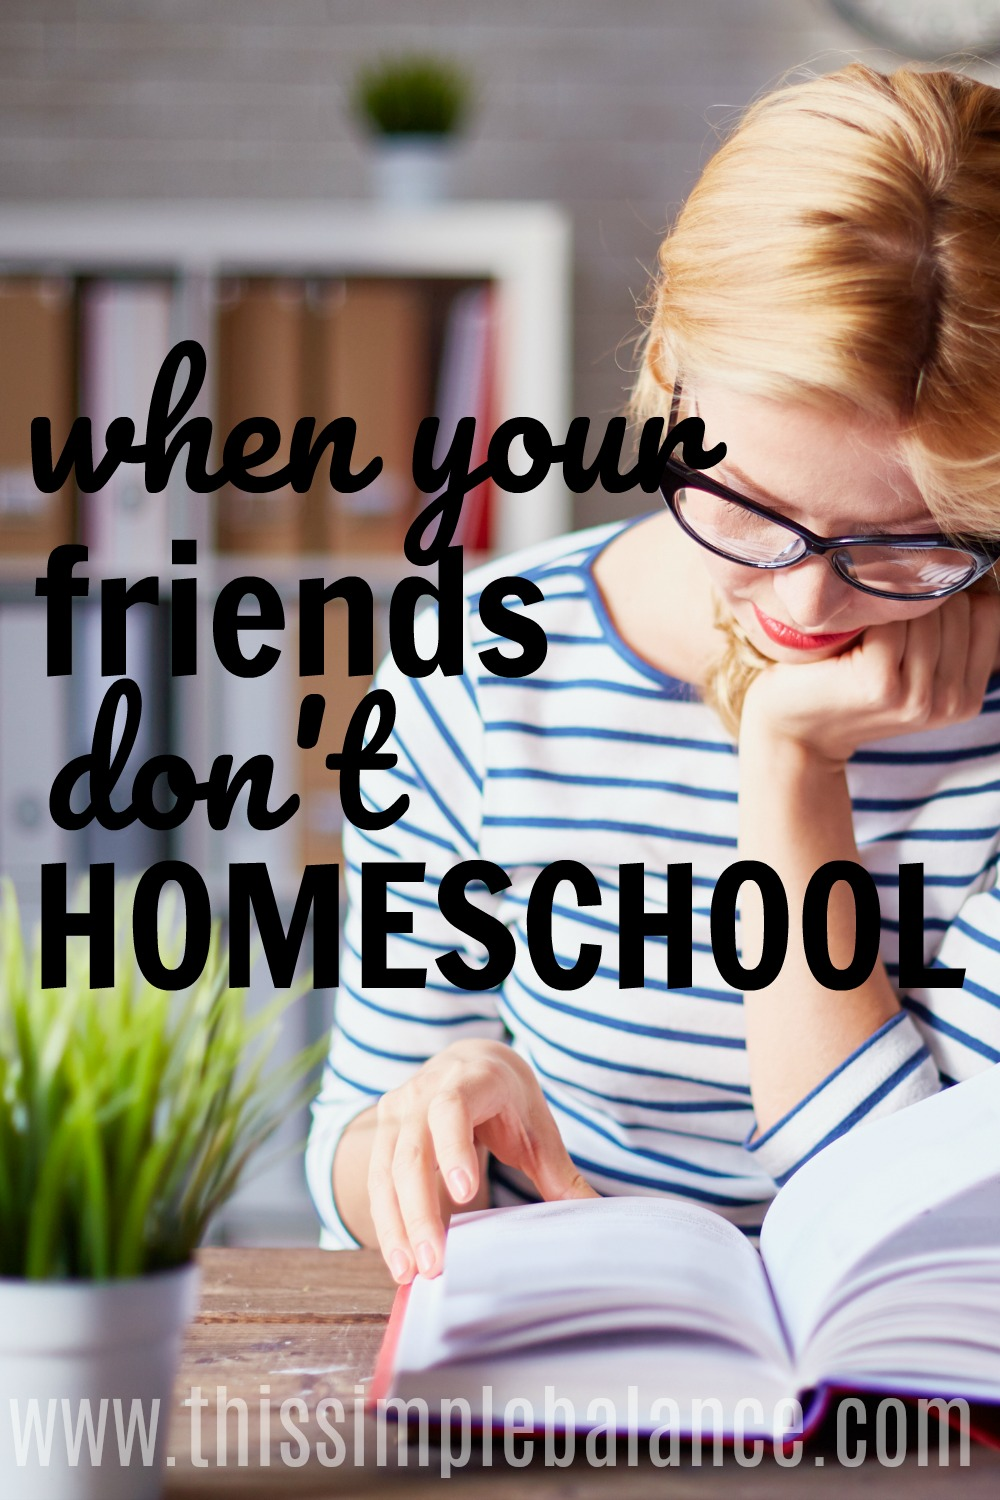 When Your Friends Don't Homeschool: It can be super lonely when you're the only one in your friend group is homeschooling. This post offers so much wisdom on how to cope.